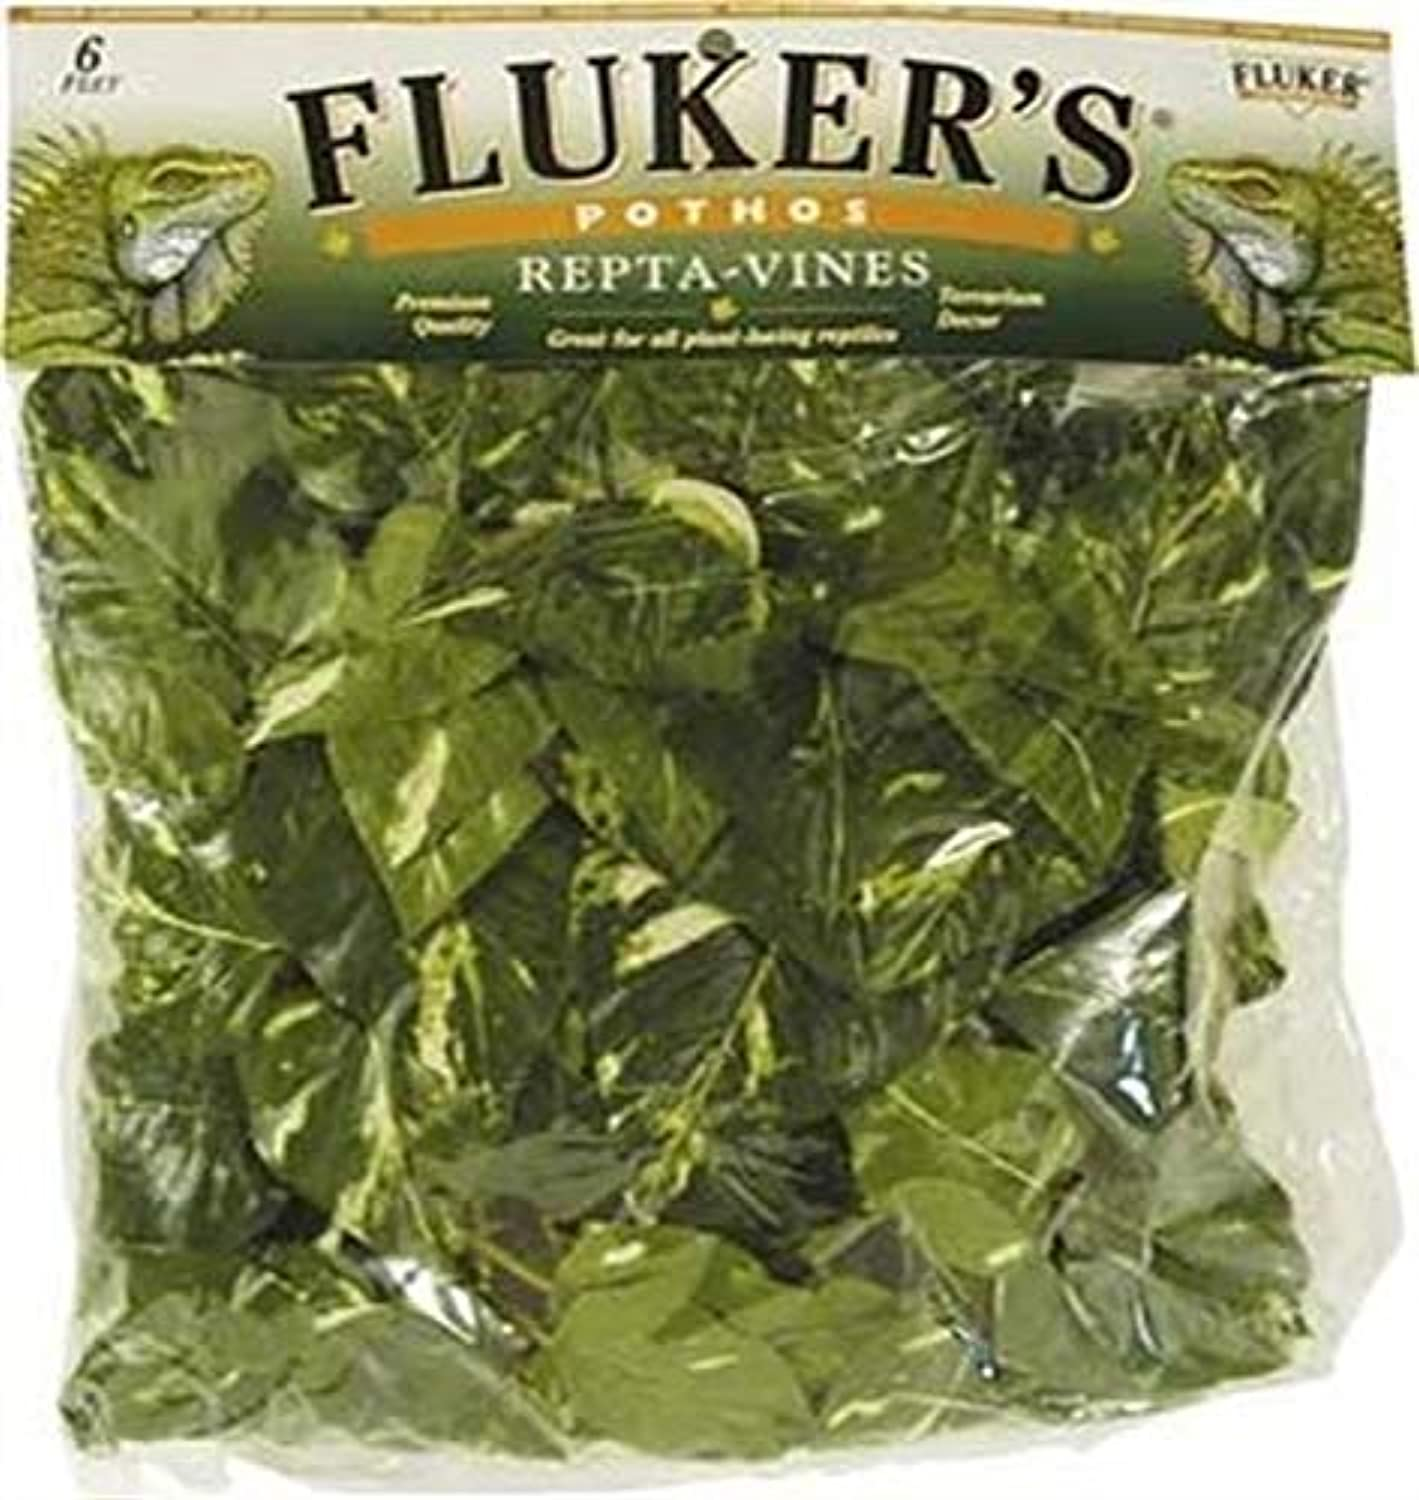 Classier: Buy Fluker's Fluker's Repta Vines for Reptiles and Amphibians